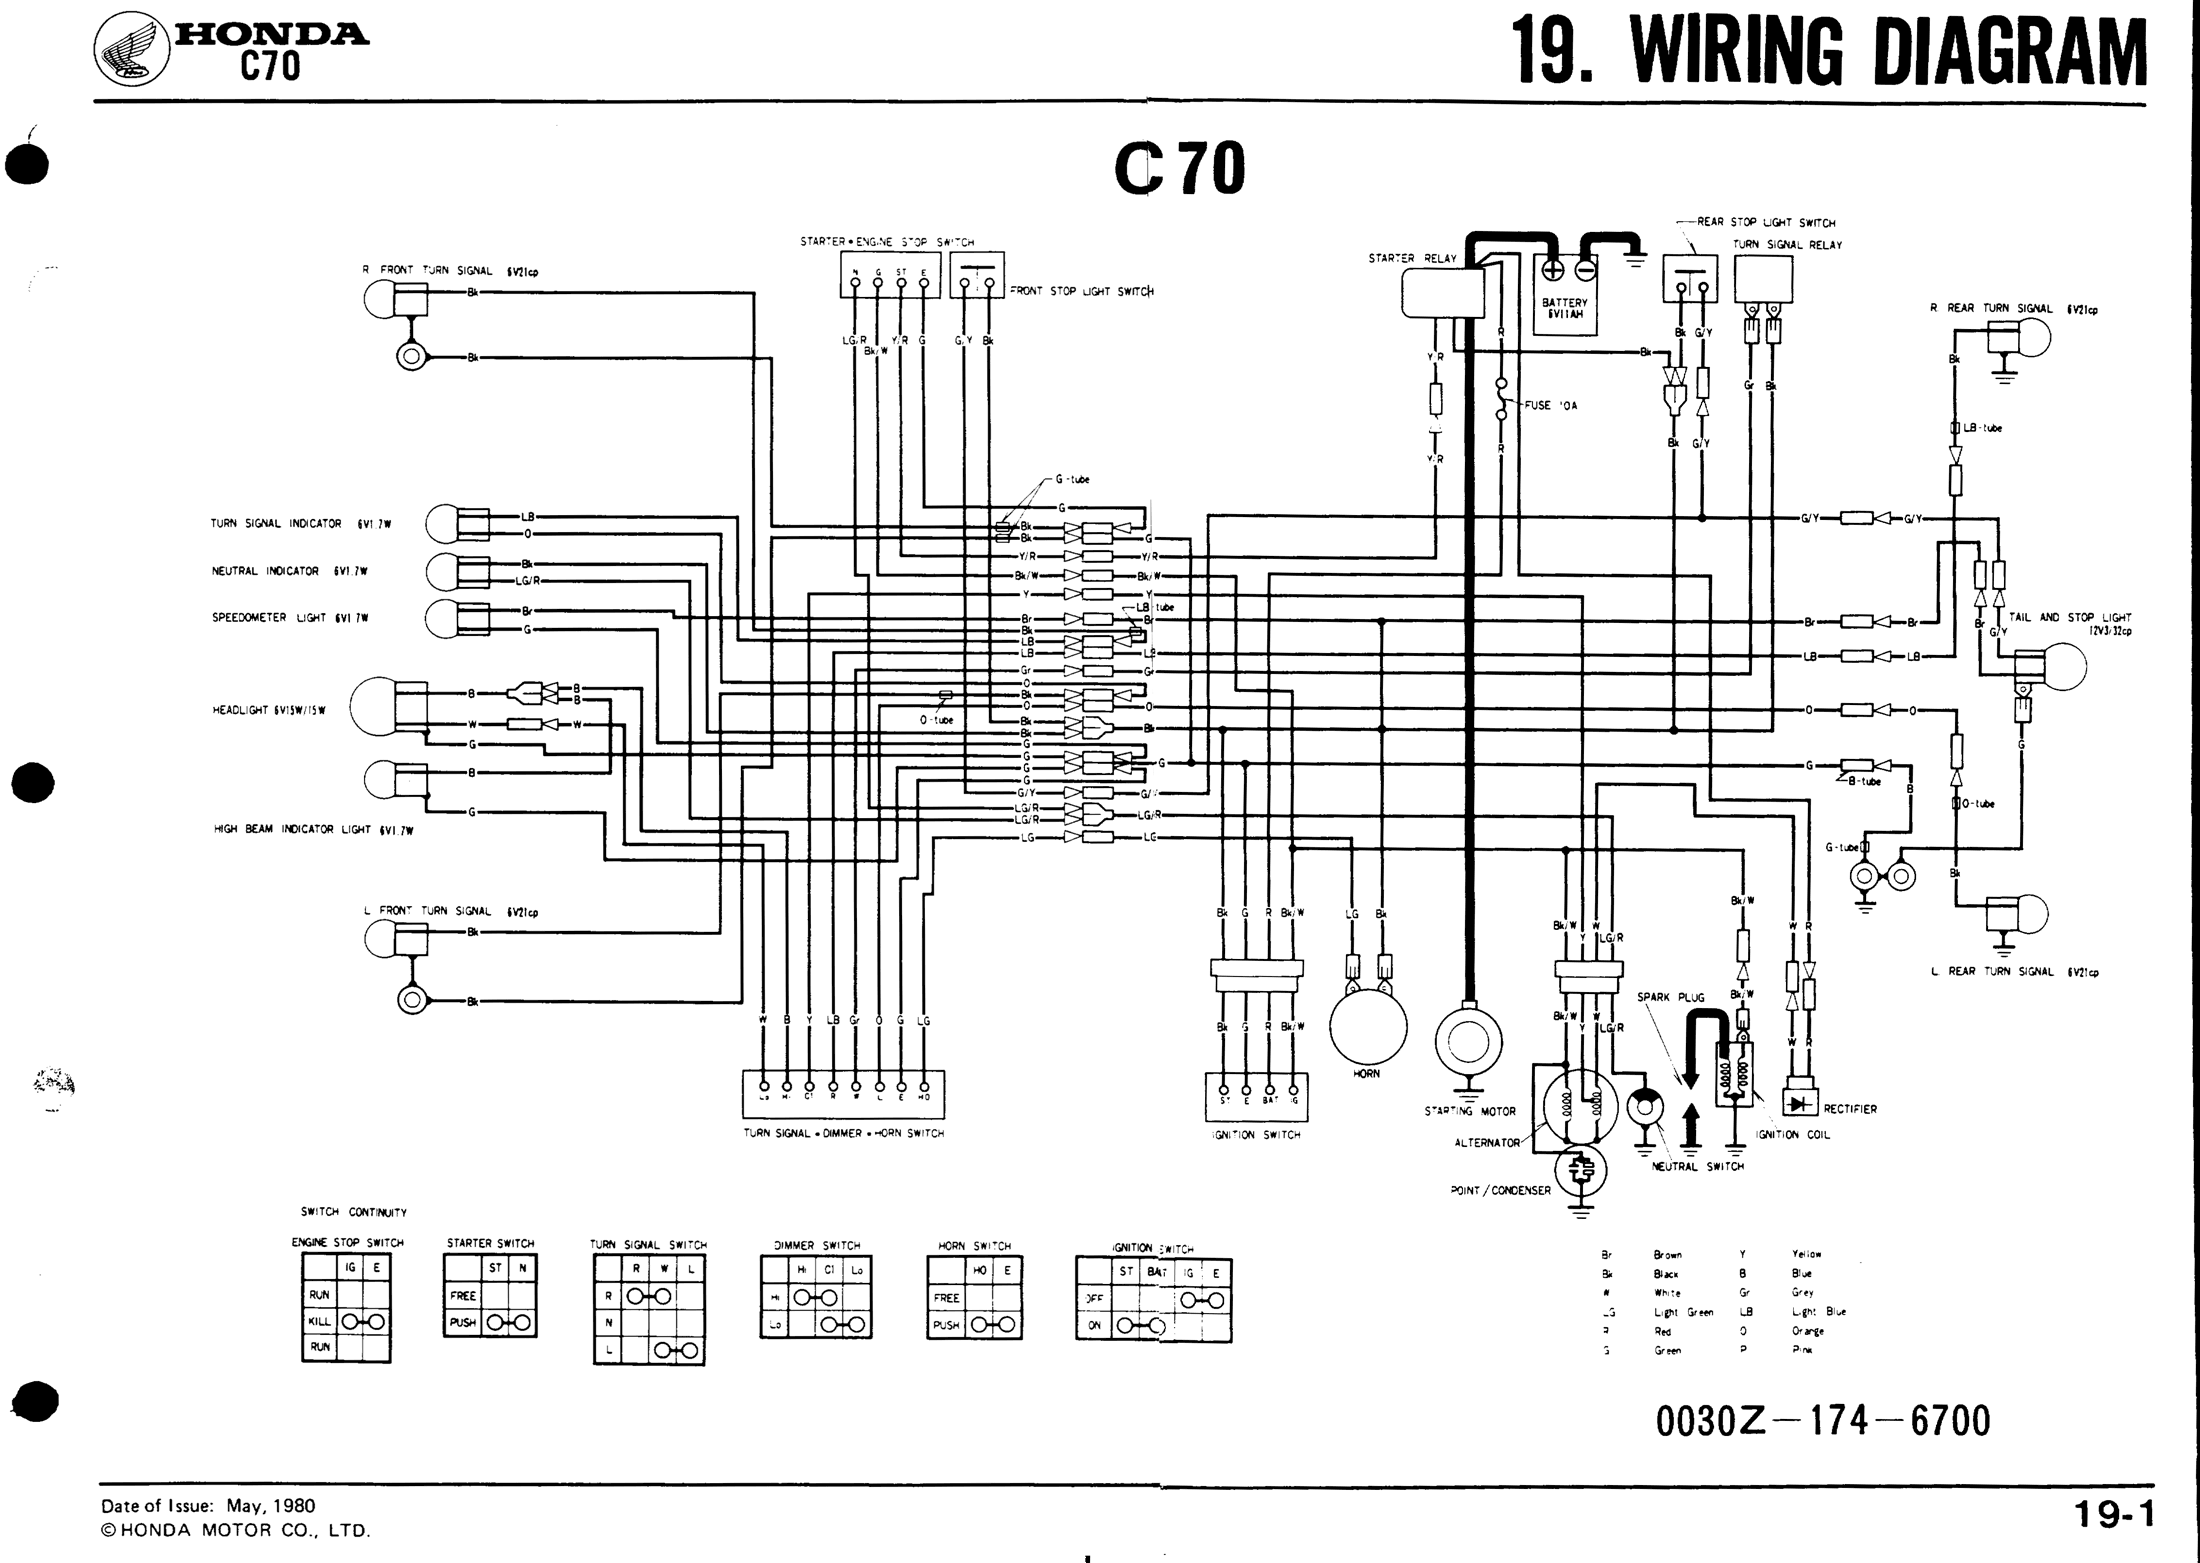 Honda C70 Wiring Diagrams